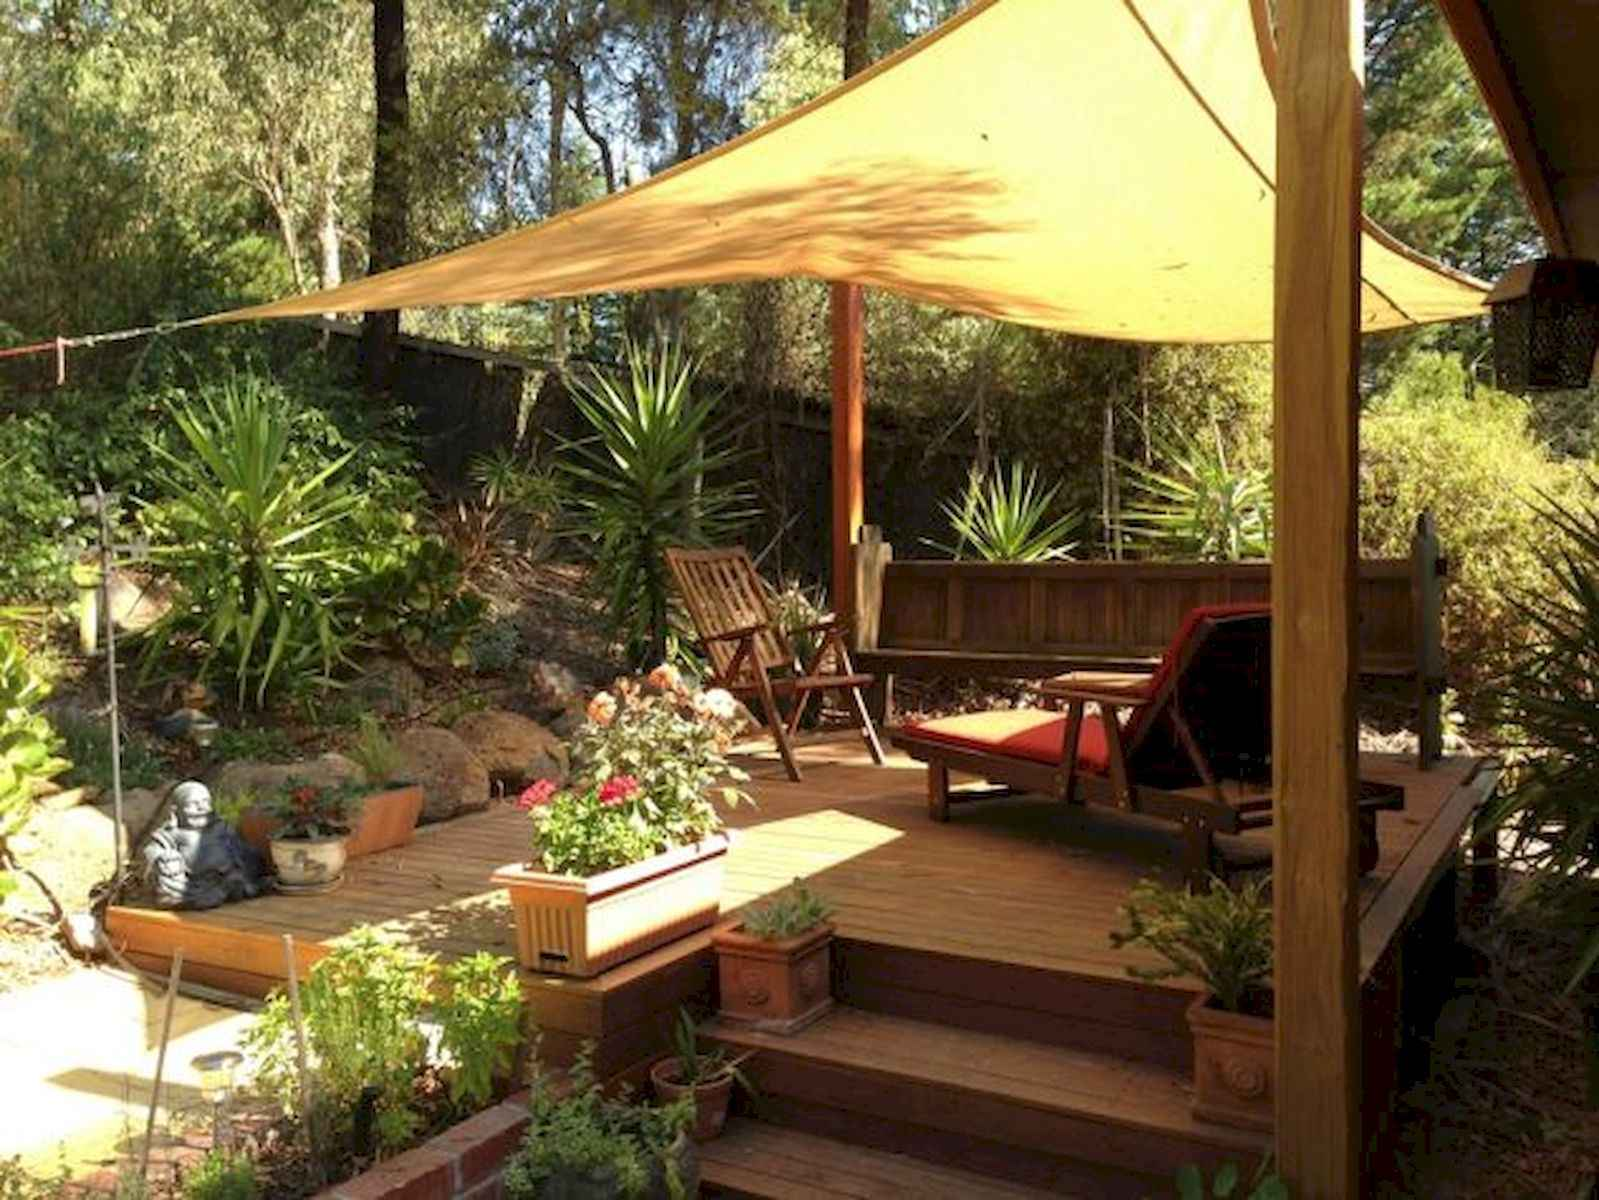 80 DIY Summery Backyard Projects Ideas Make Your Summer Awesome (34)